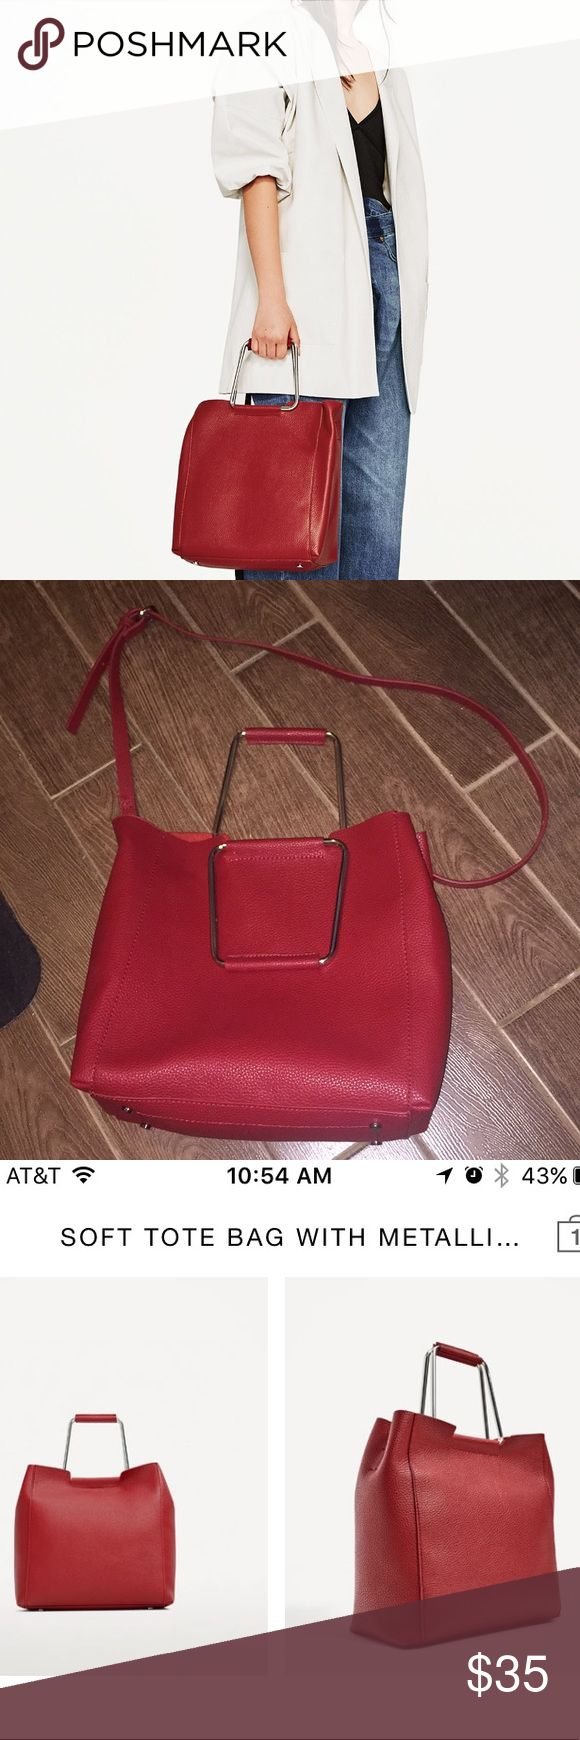 Zara Tote bag Zara Tote bag. Used once still in excellent condition. Zara Bags Totes